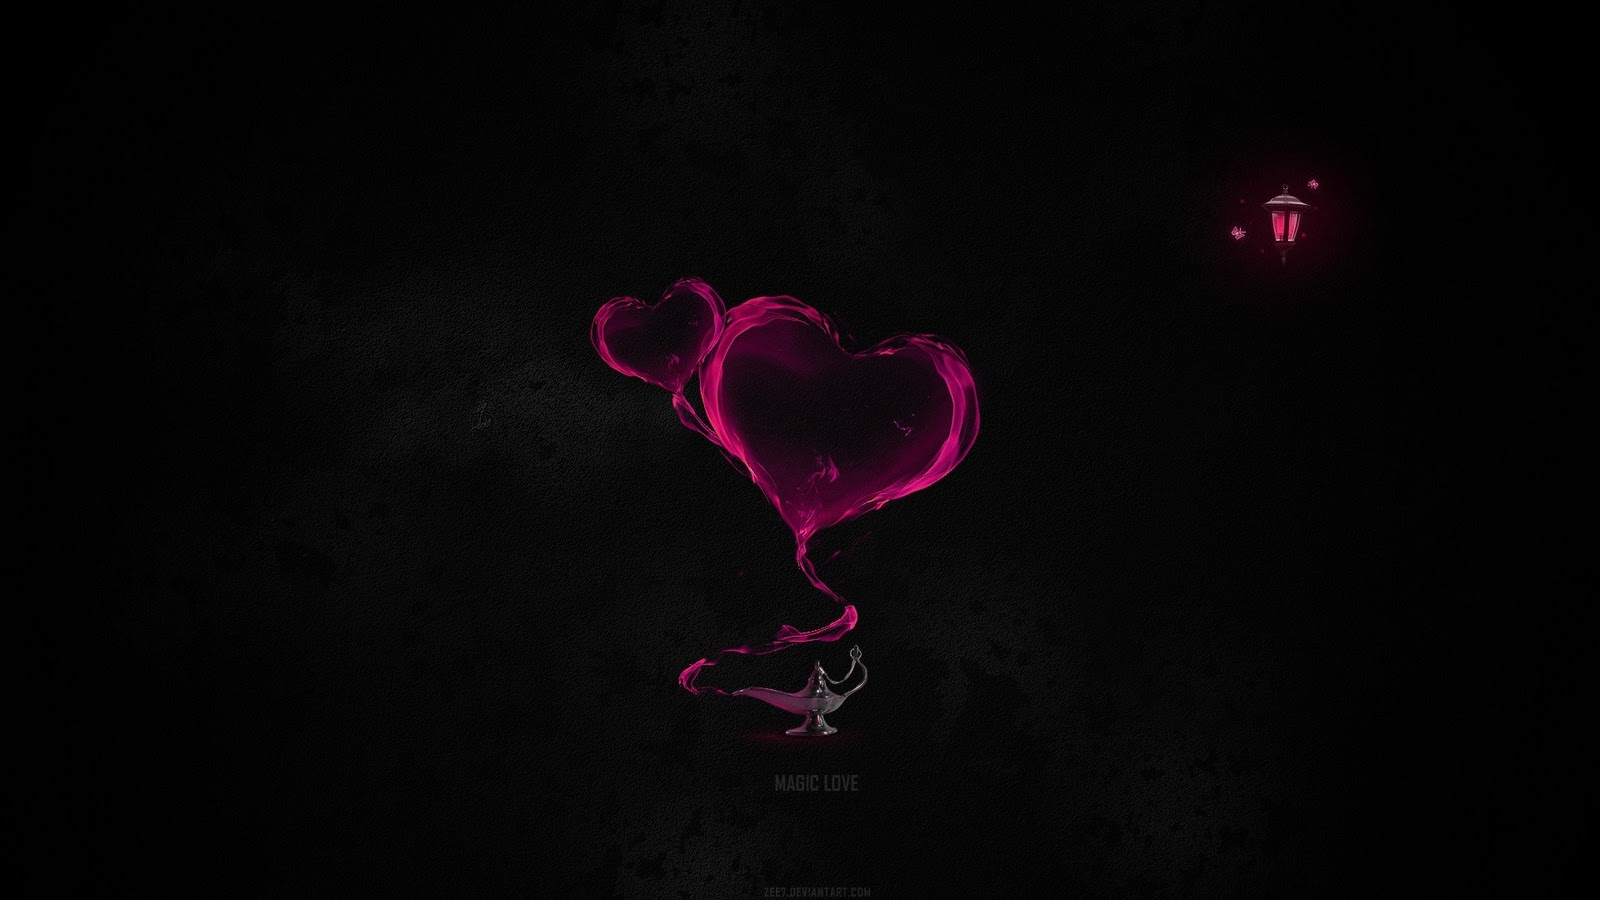 Love Wallpaper Of S : Free 3D Wallpapers Download: Love hd wallpaper, love ...